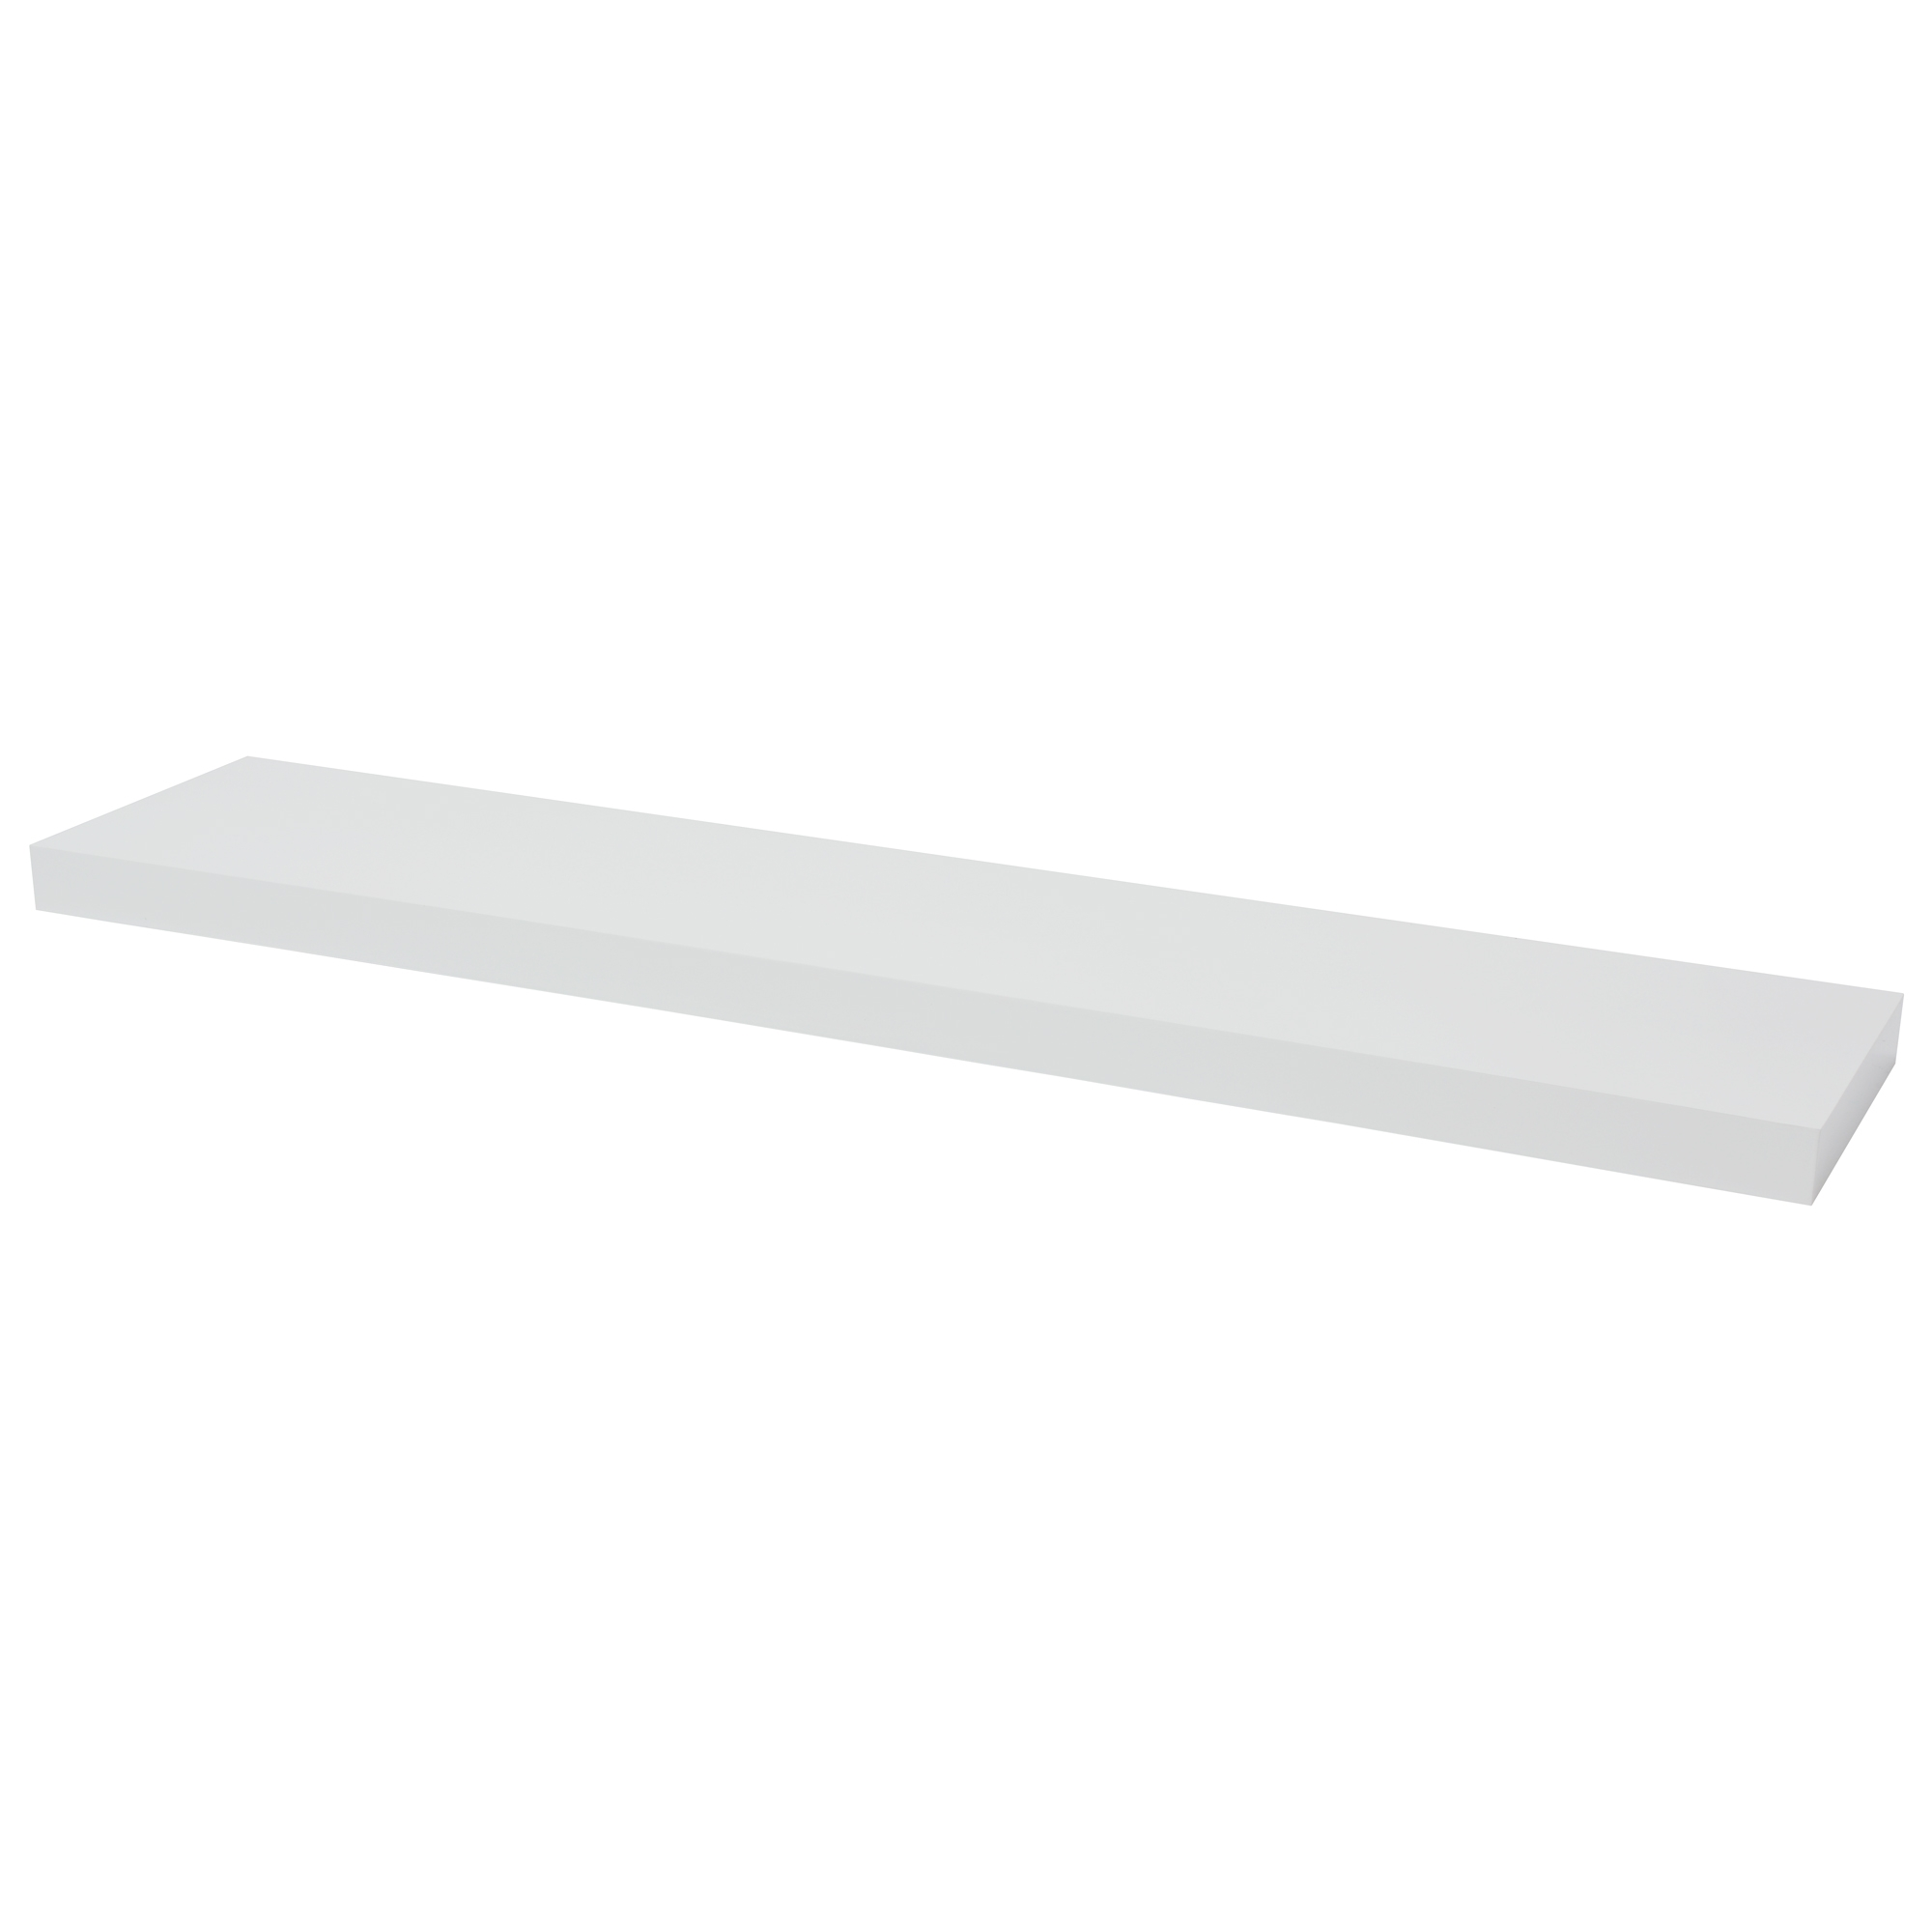 Floating Shelf High Gloss White Lacquered 120cm Pekodom Throughout Floating Shelves 120cm (#5 of 12)